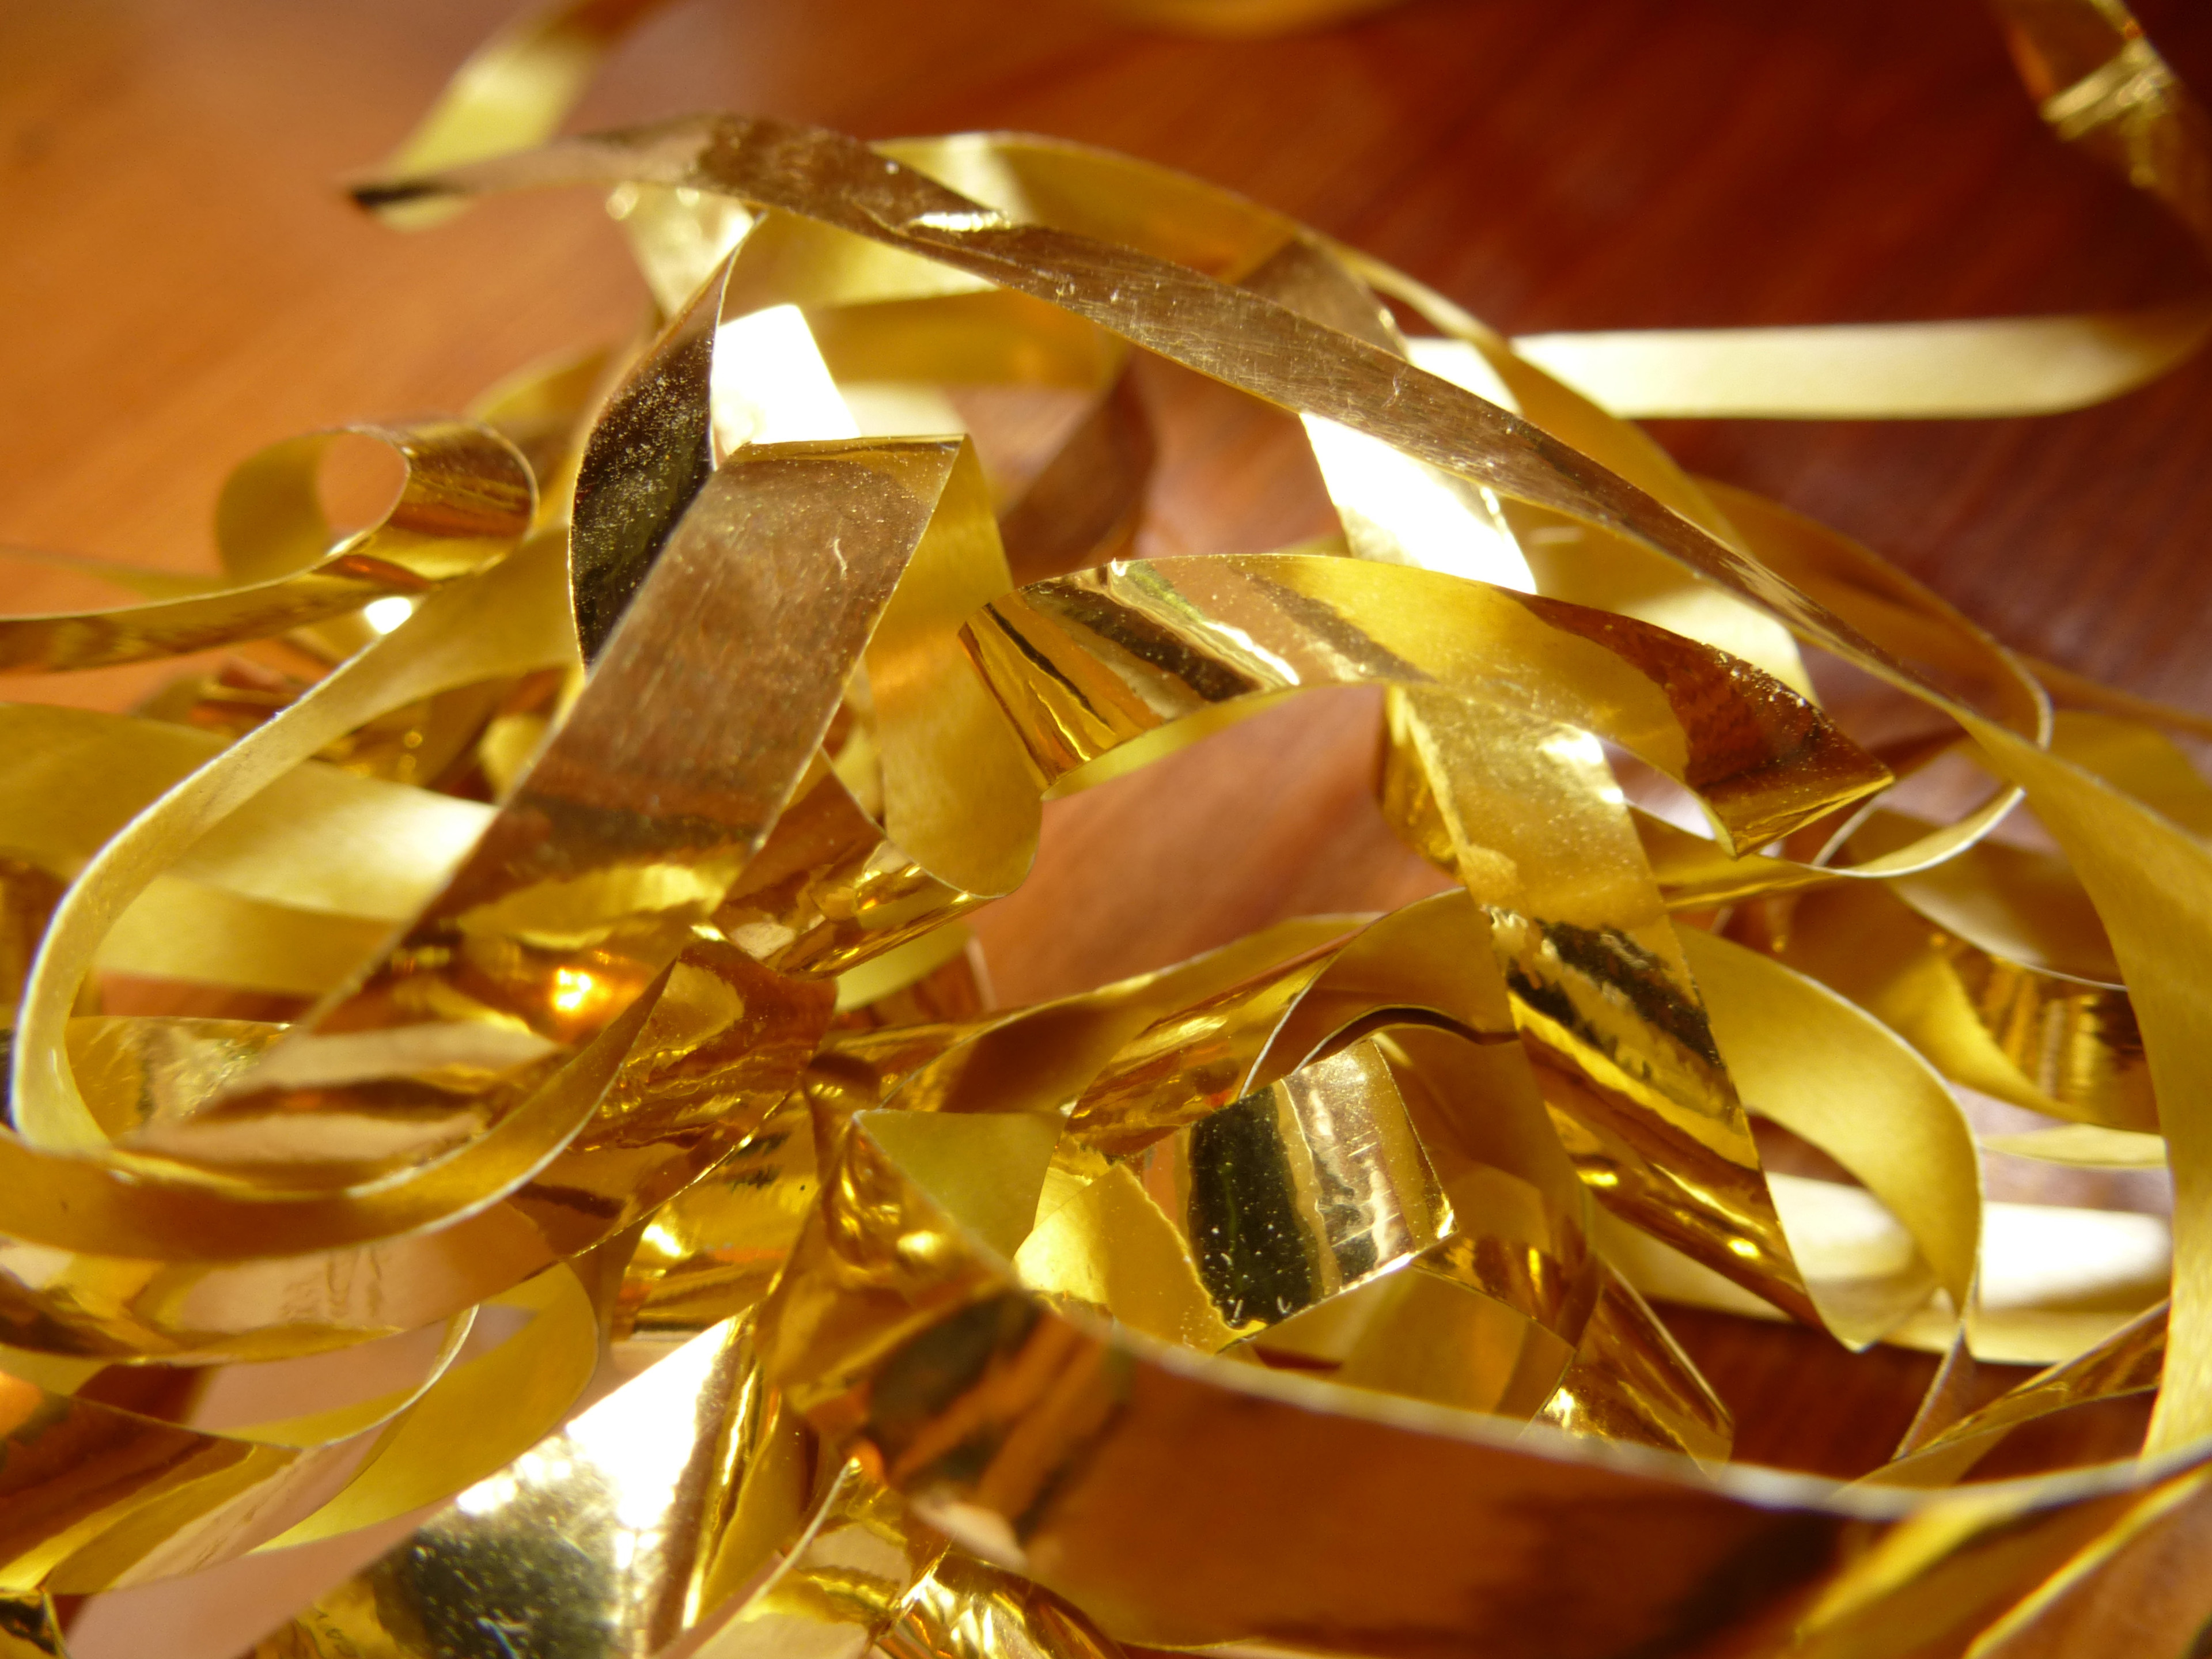 Close up Tangled Gold Foil Cuttings on Top of Wooden Table